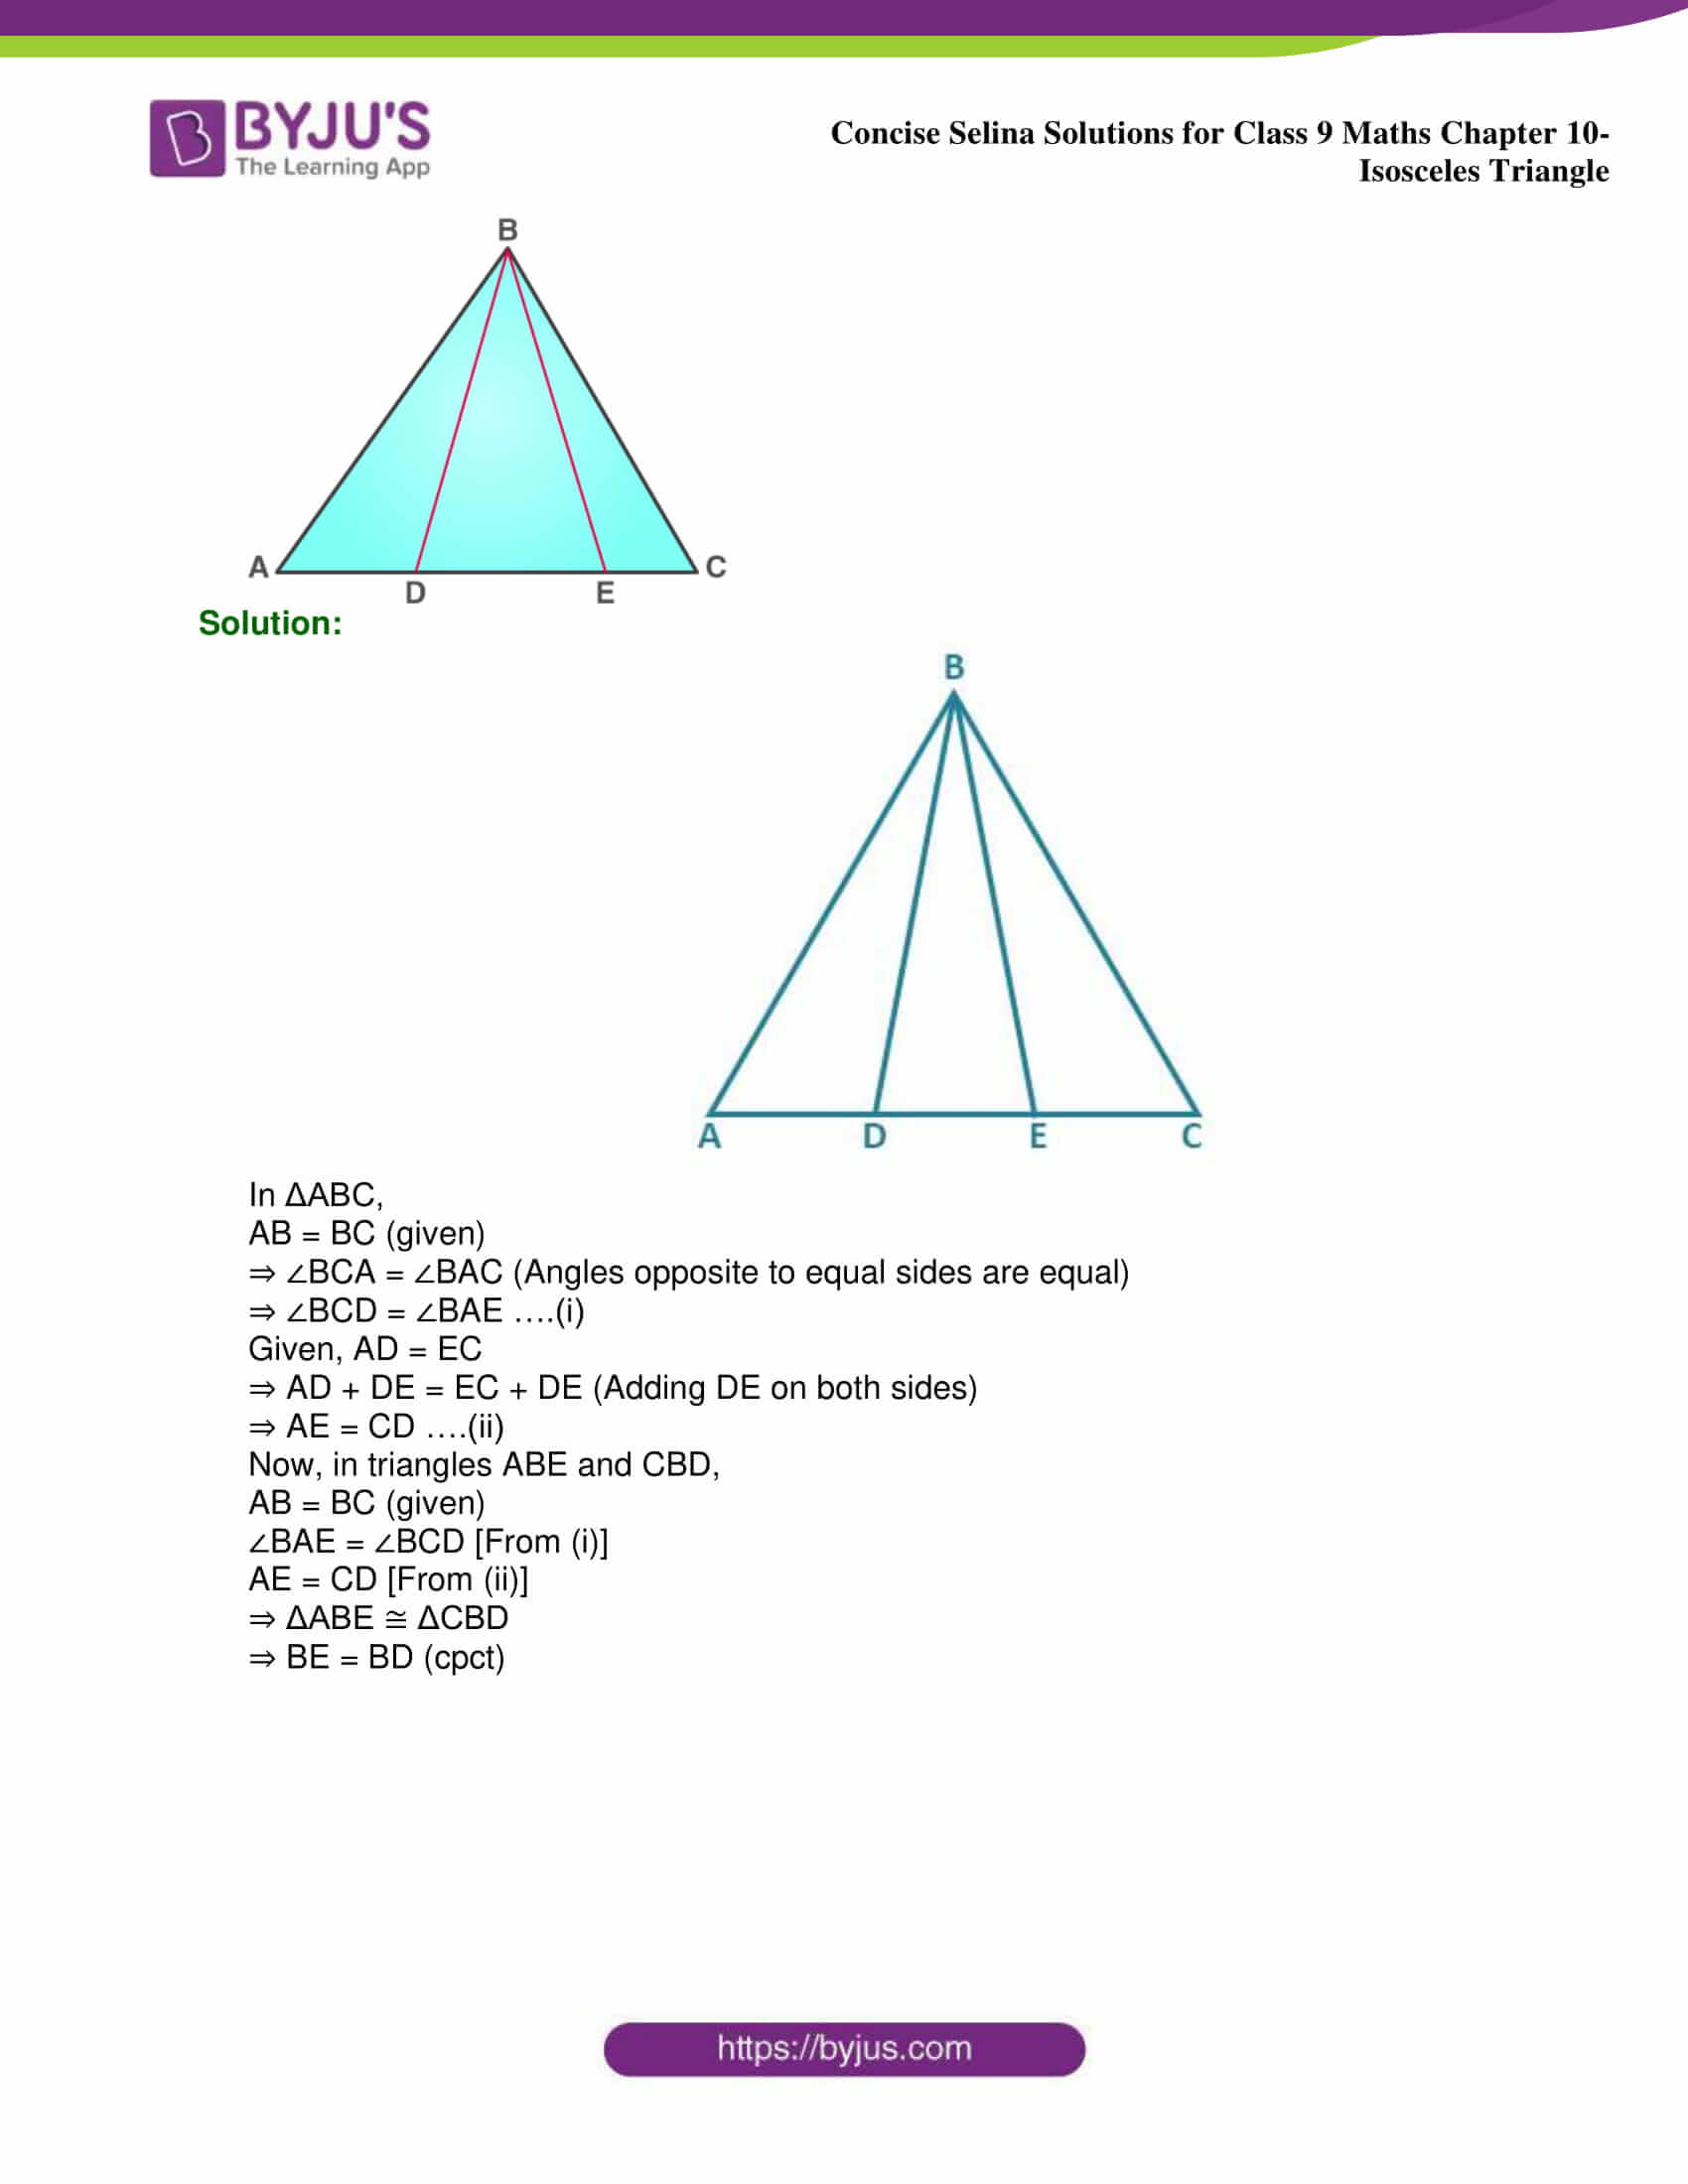 selina Solutions for Class 9 Maths Chapter 10 part 20